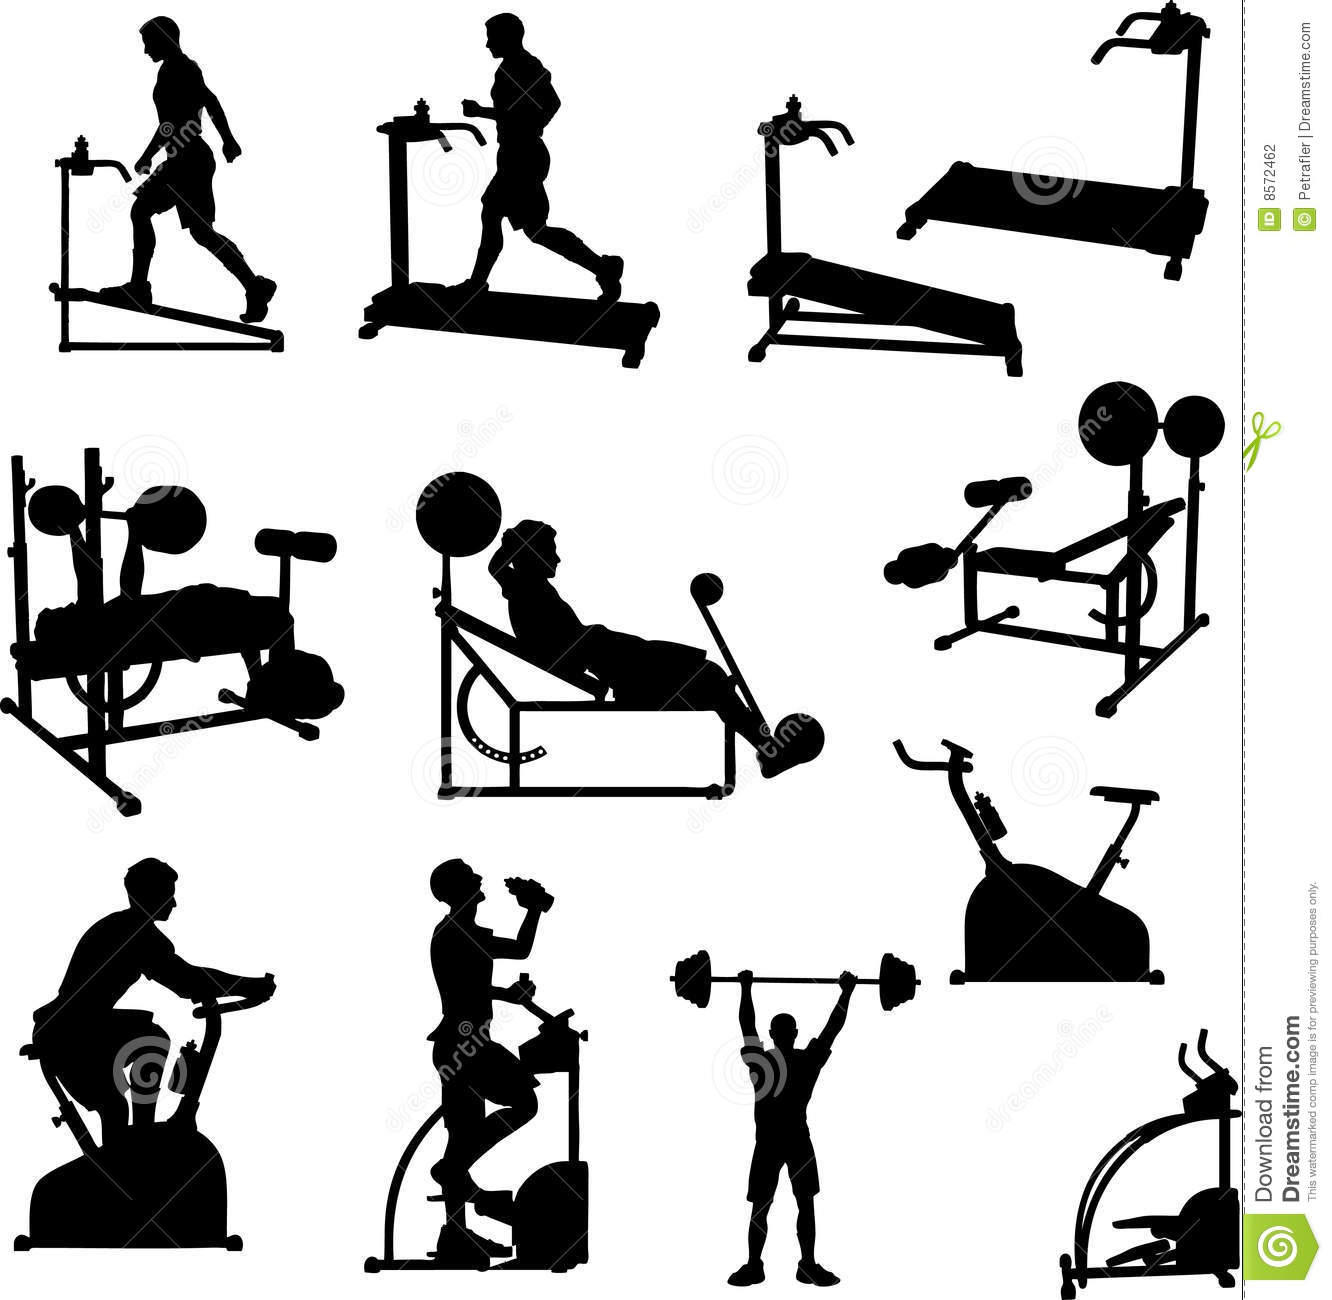 Male Excercise Silhouettes Stock Vector Illustration Of